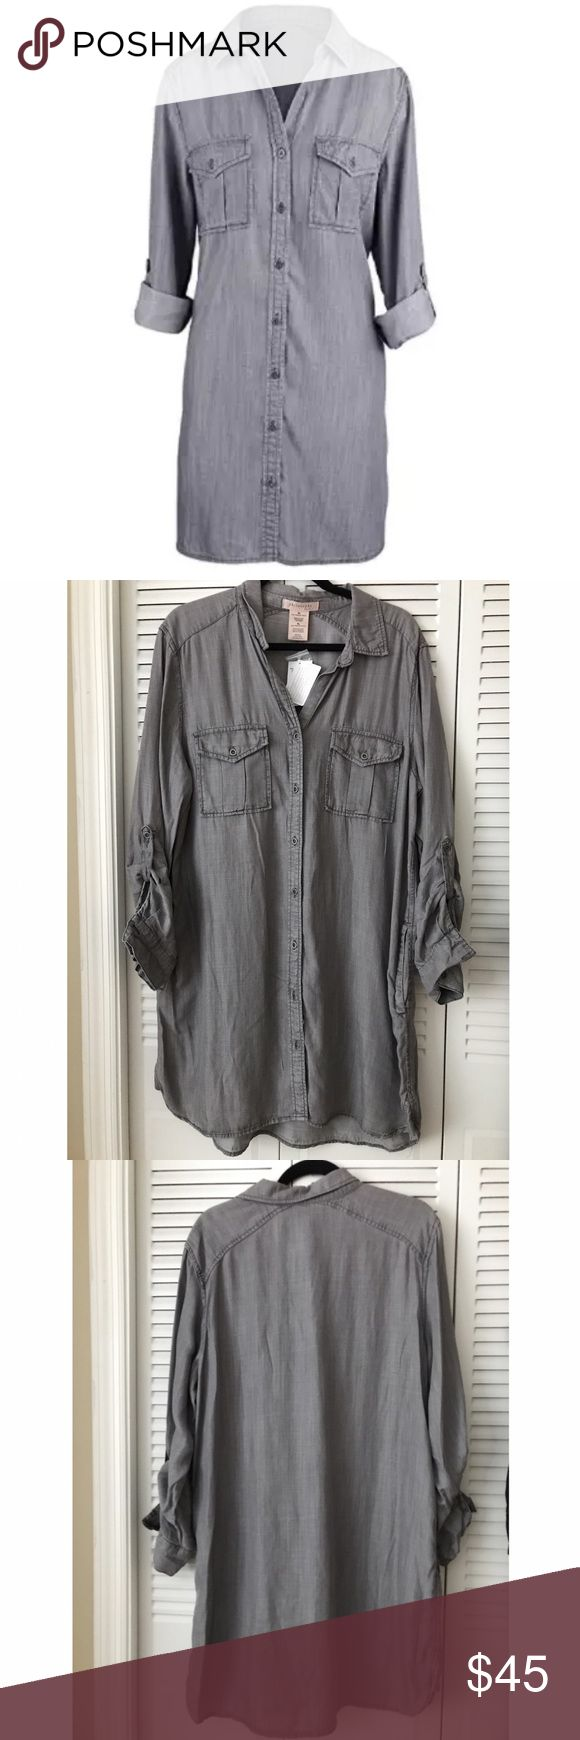 """Philosophy Women Tencel Tunic Denim Shirt Dress XL Philosophy Womens Tencel Tunic Denim Shirt Dress Size XL, $88 100% Tencel/LyocellGentle Wash or Dry CleanPhilosophy Brand """"Tunic Dress"""" - Grey - XL - 100% Tencel/LyocellSeven Button """"Denim Texture"""" Shirt Tunic/Dress Worn as a Dress or TunicWear this Beautiful Garment With or Without a BeltButton Chest Pockets With Flaps, Hip Level Side-PocketsAdjustable Sleeve Lengths. Gentle Wash or Dry Clean.                 No PayPal, trades or…"""